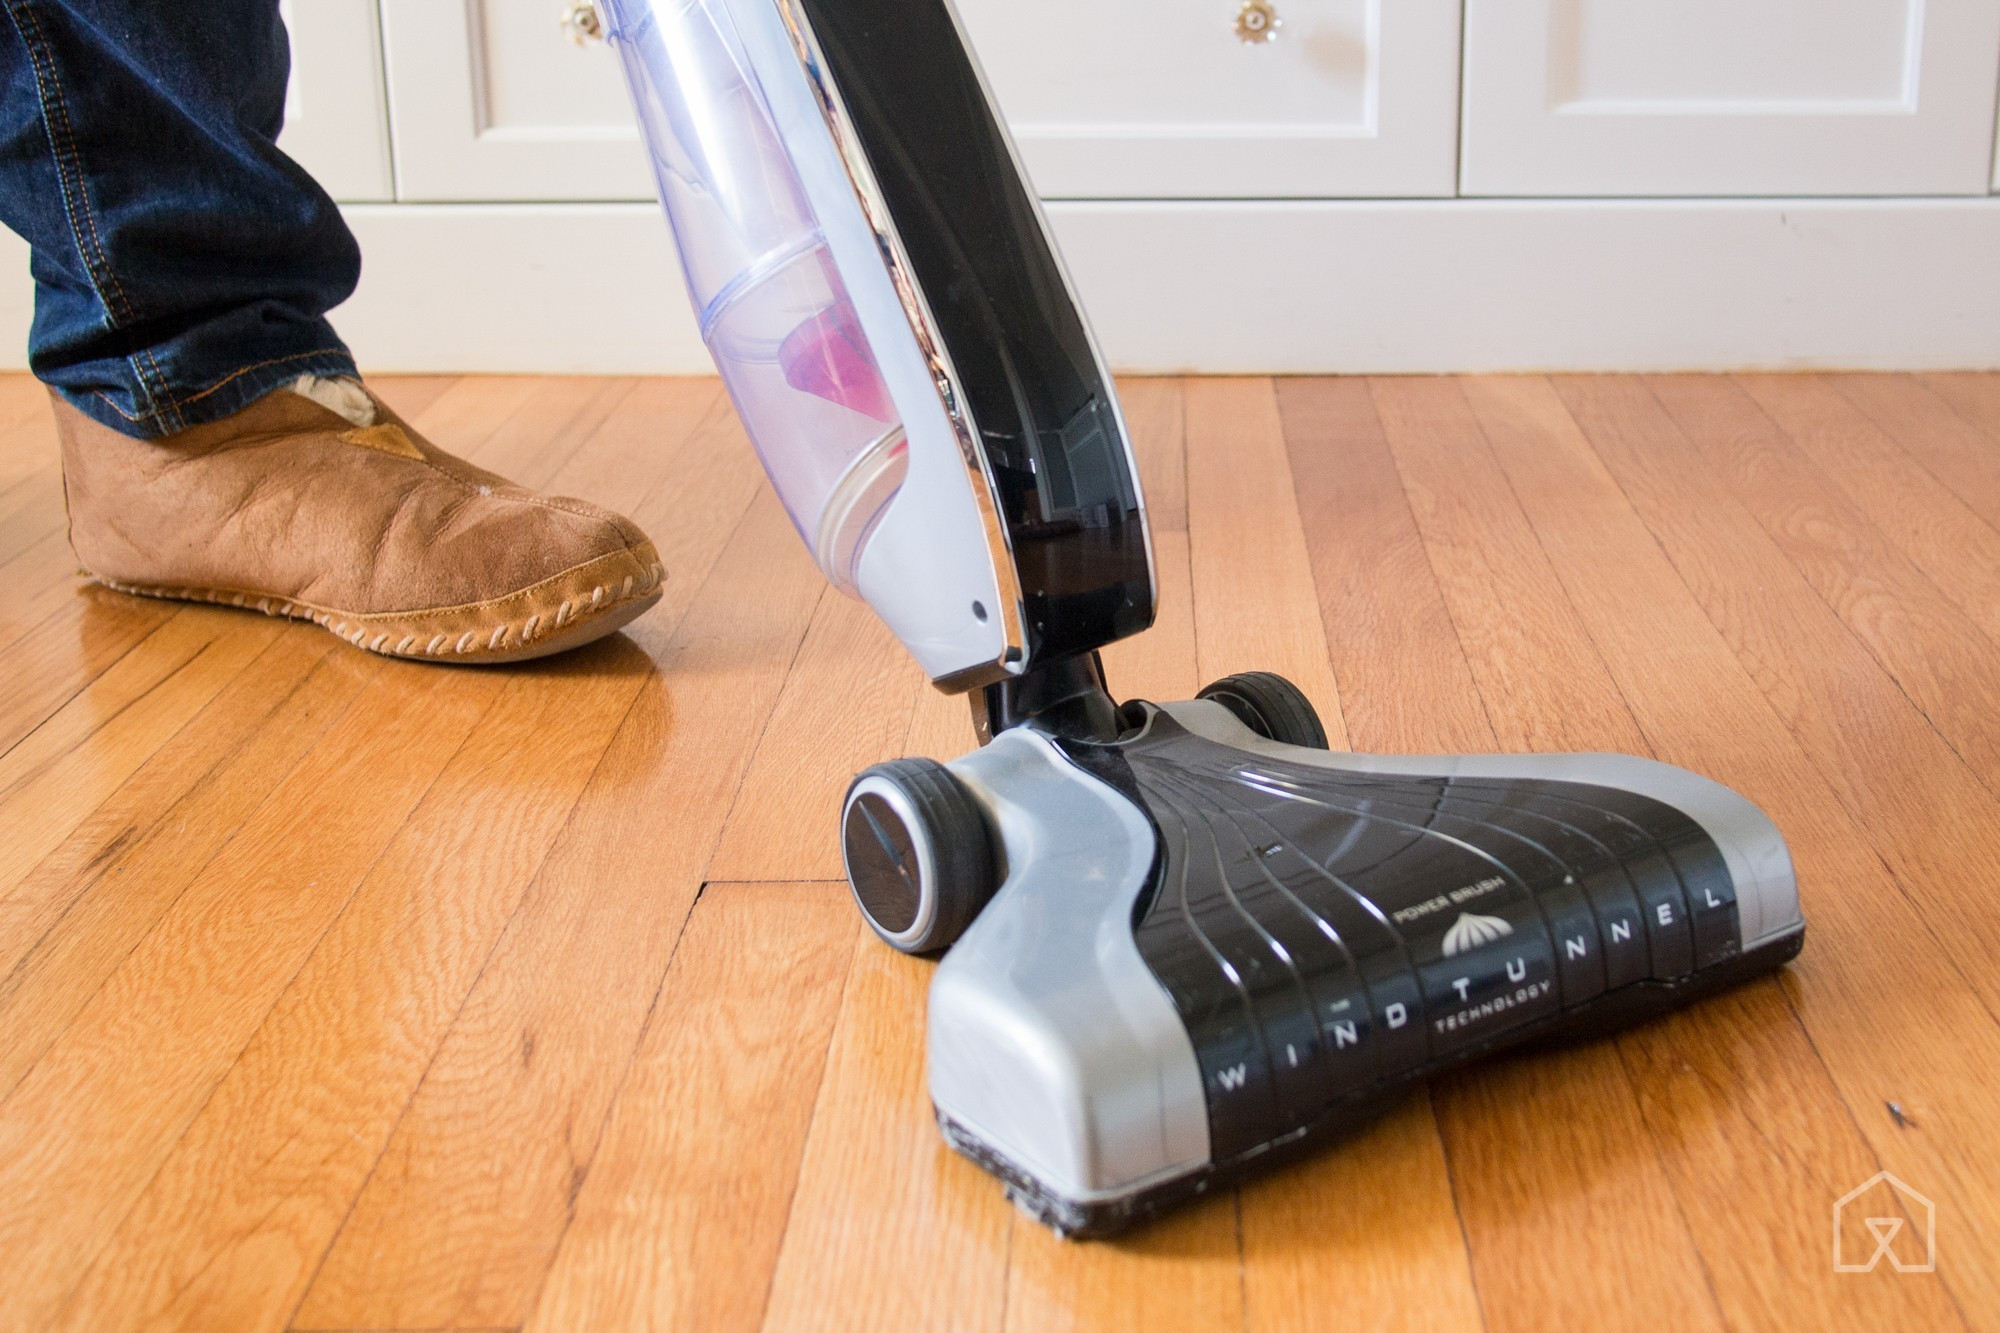 how to use bona hardwood floor mop of best steam mop hardwood floors floor within best steam mop hardwood floors wood floor steam cleaner choosed for colorful 1787